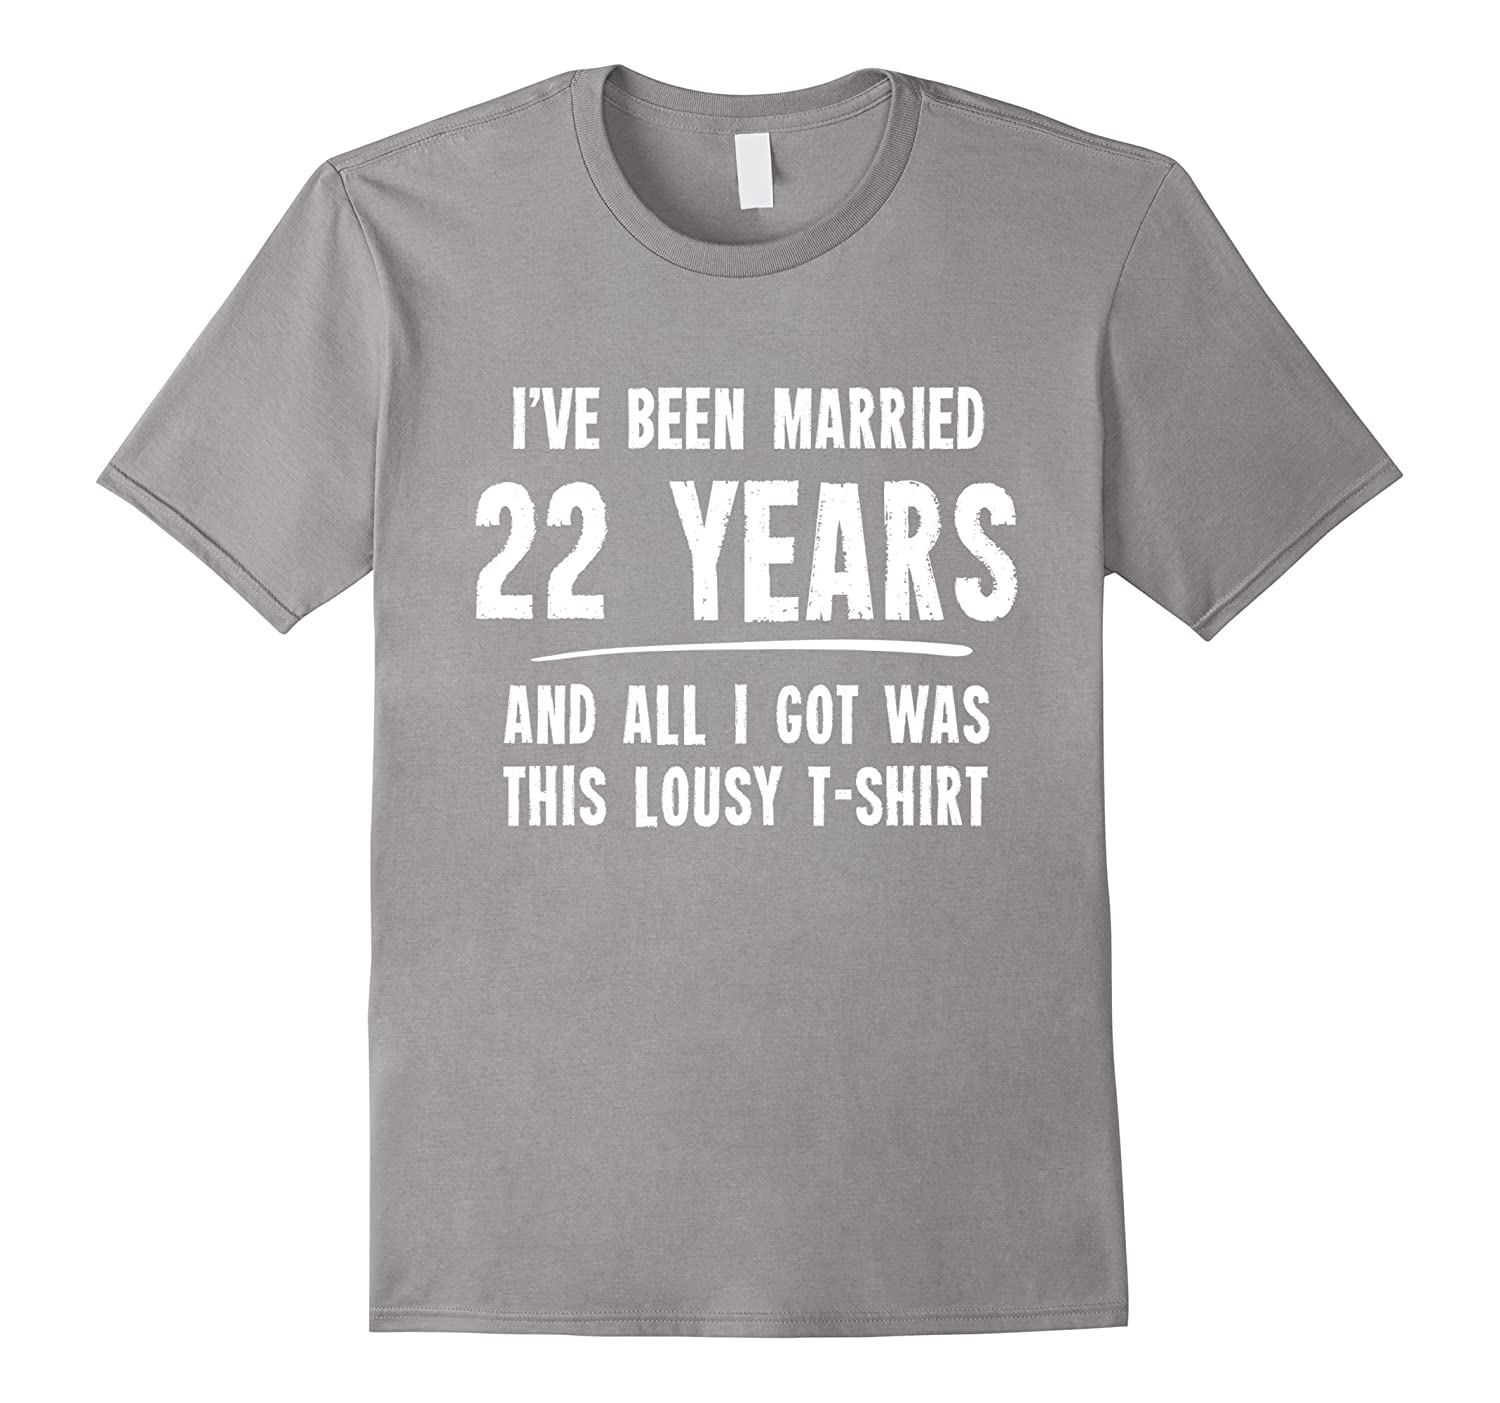 22nd Wedding Anniversary Gift Ideas: 22 Year Anniversary Gift 22nd Wedding Married Funny T-Shirt-CL